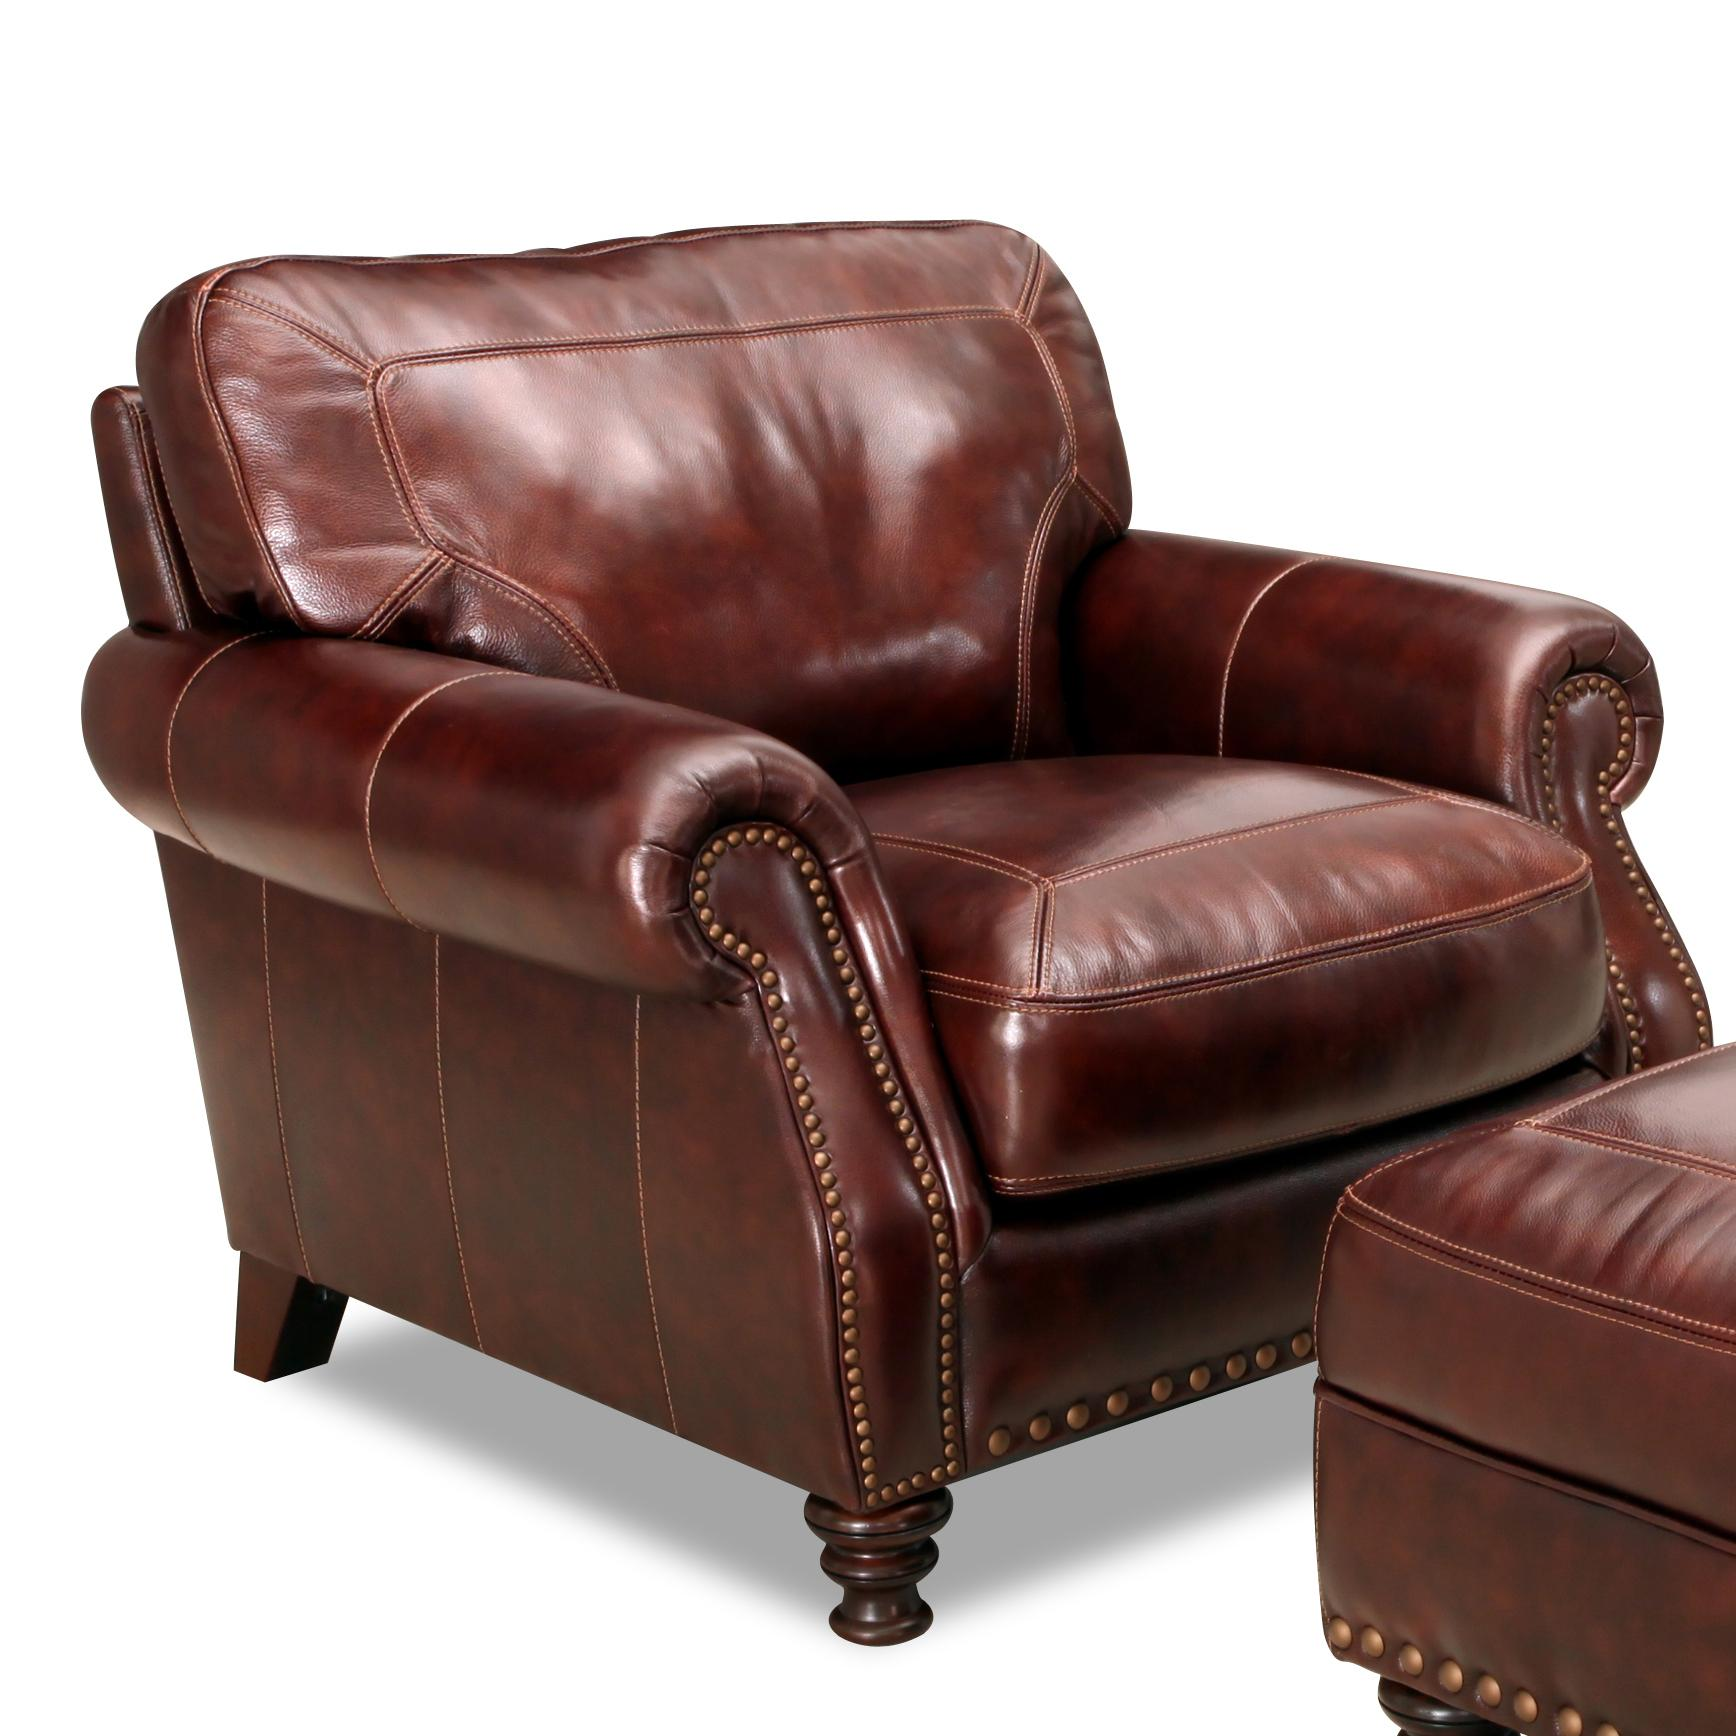 Overstuffed Chair And A Half Simon Li 6978 Rolled Arm Leather Chair With Nailhead Trim